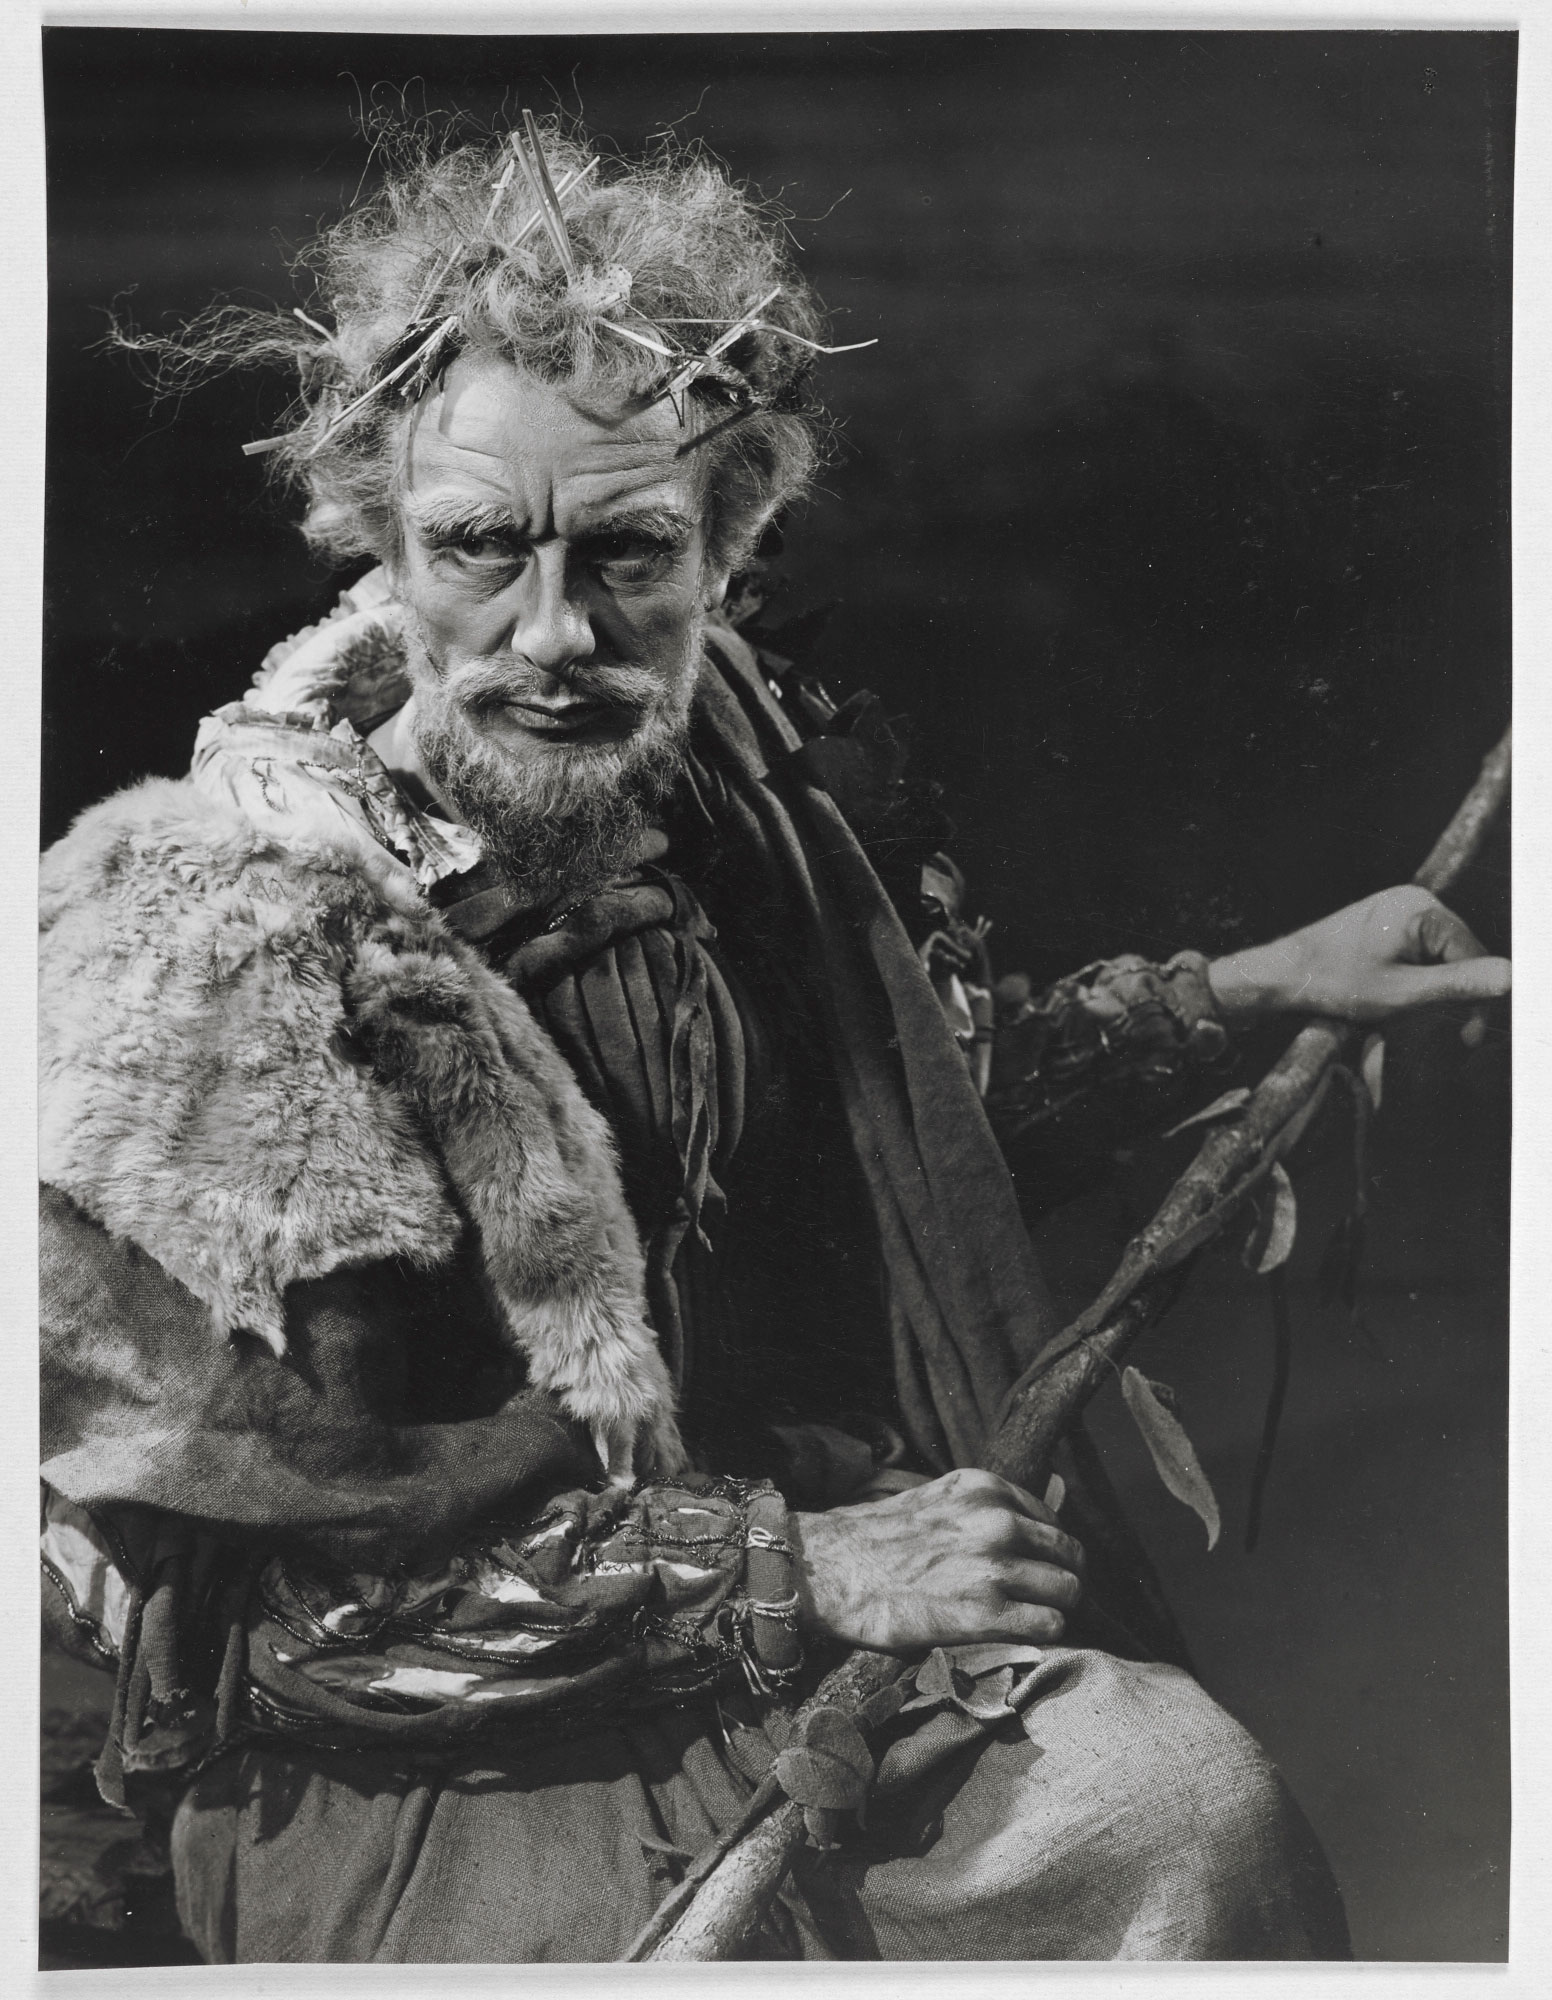 Photographs of John Gielgud as Lear, 1950, page 1